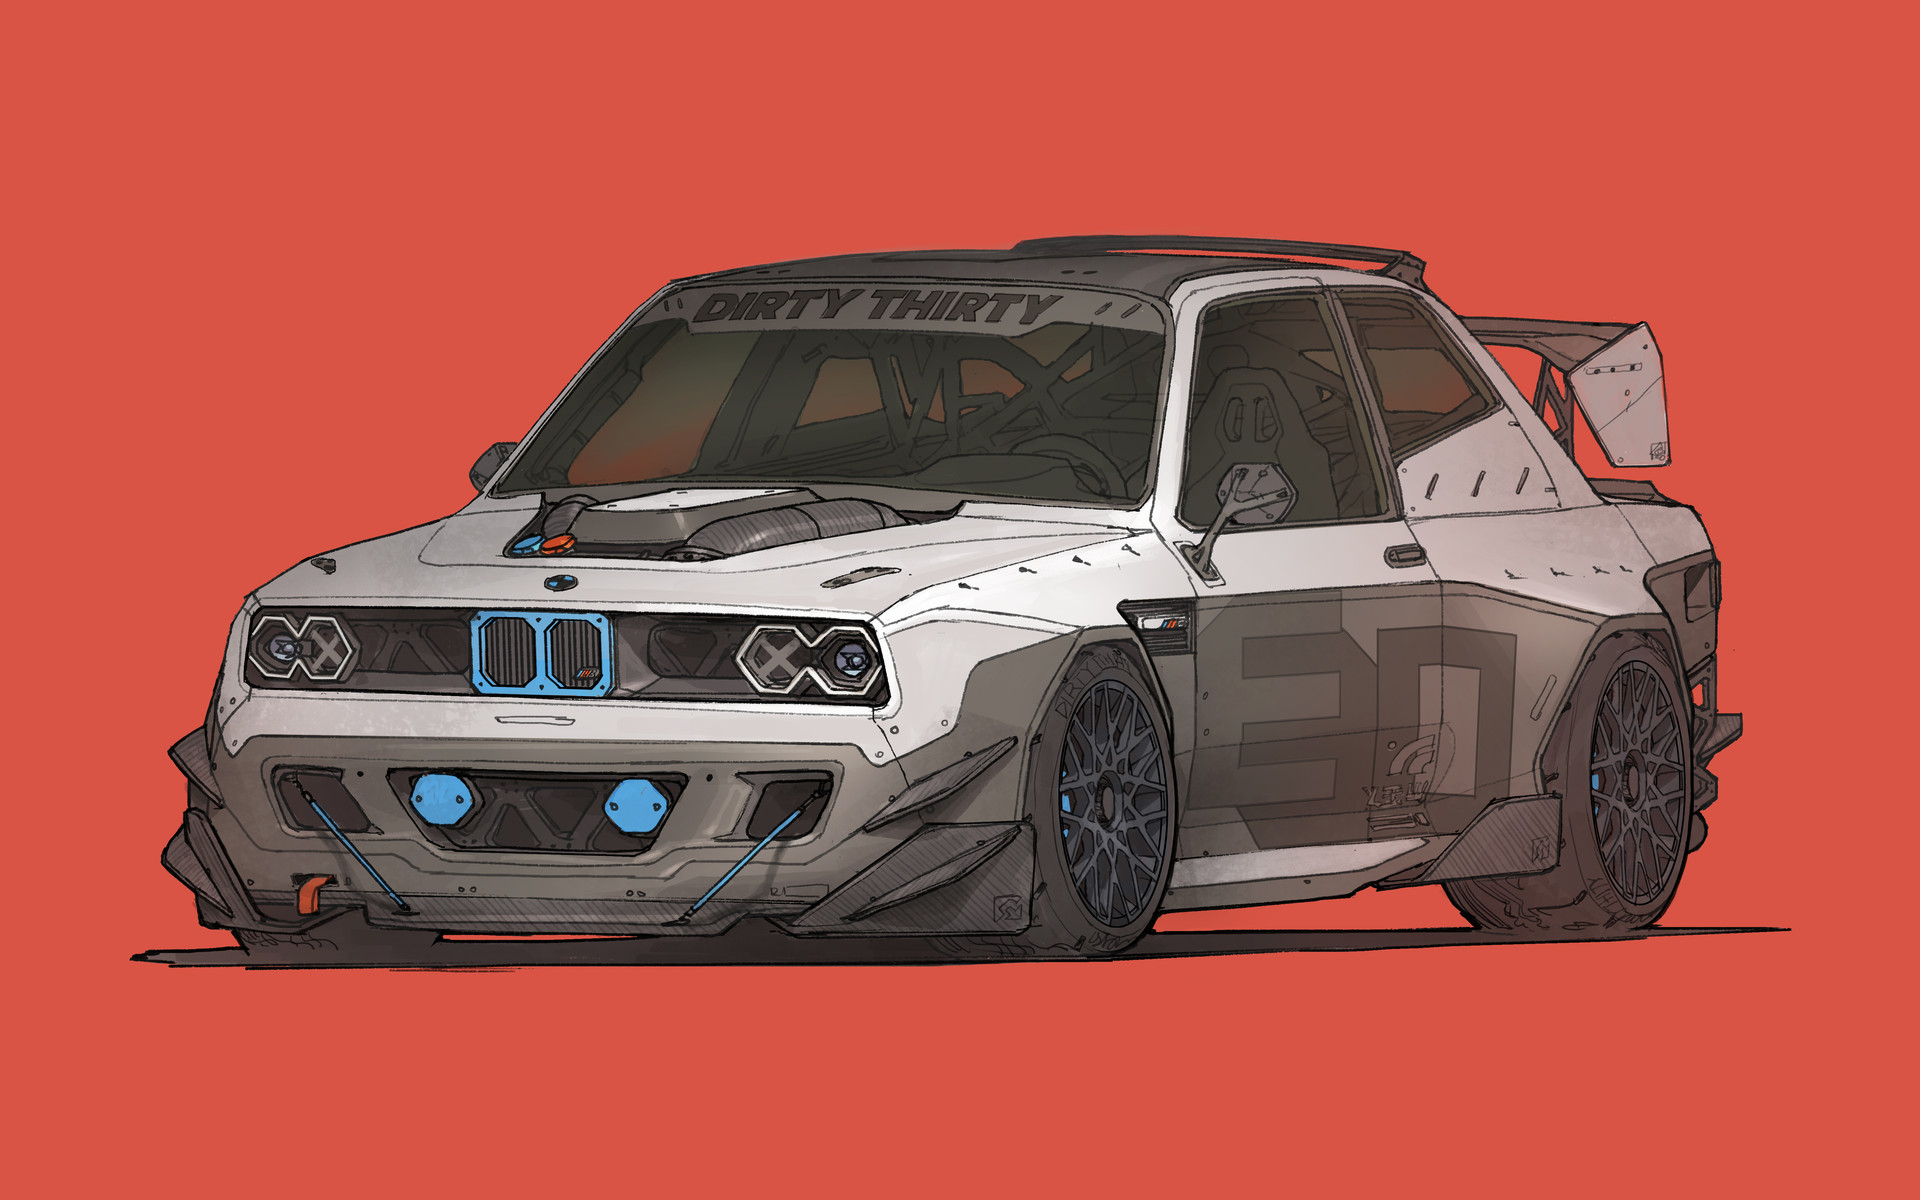 danny gardner - e30 m3 project car concept design